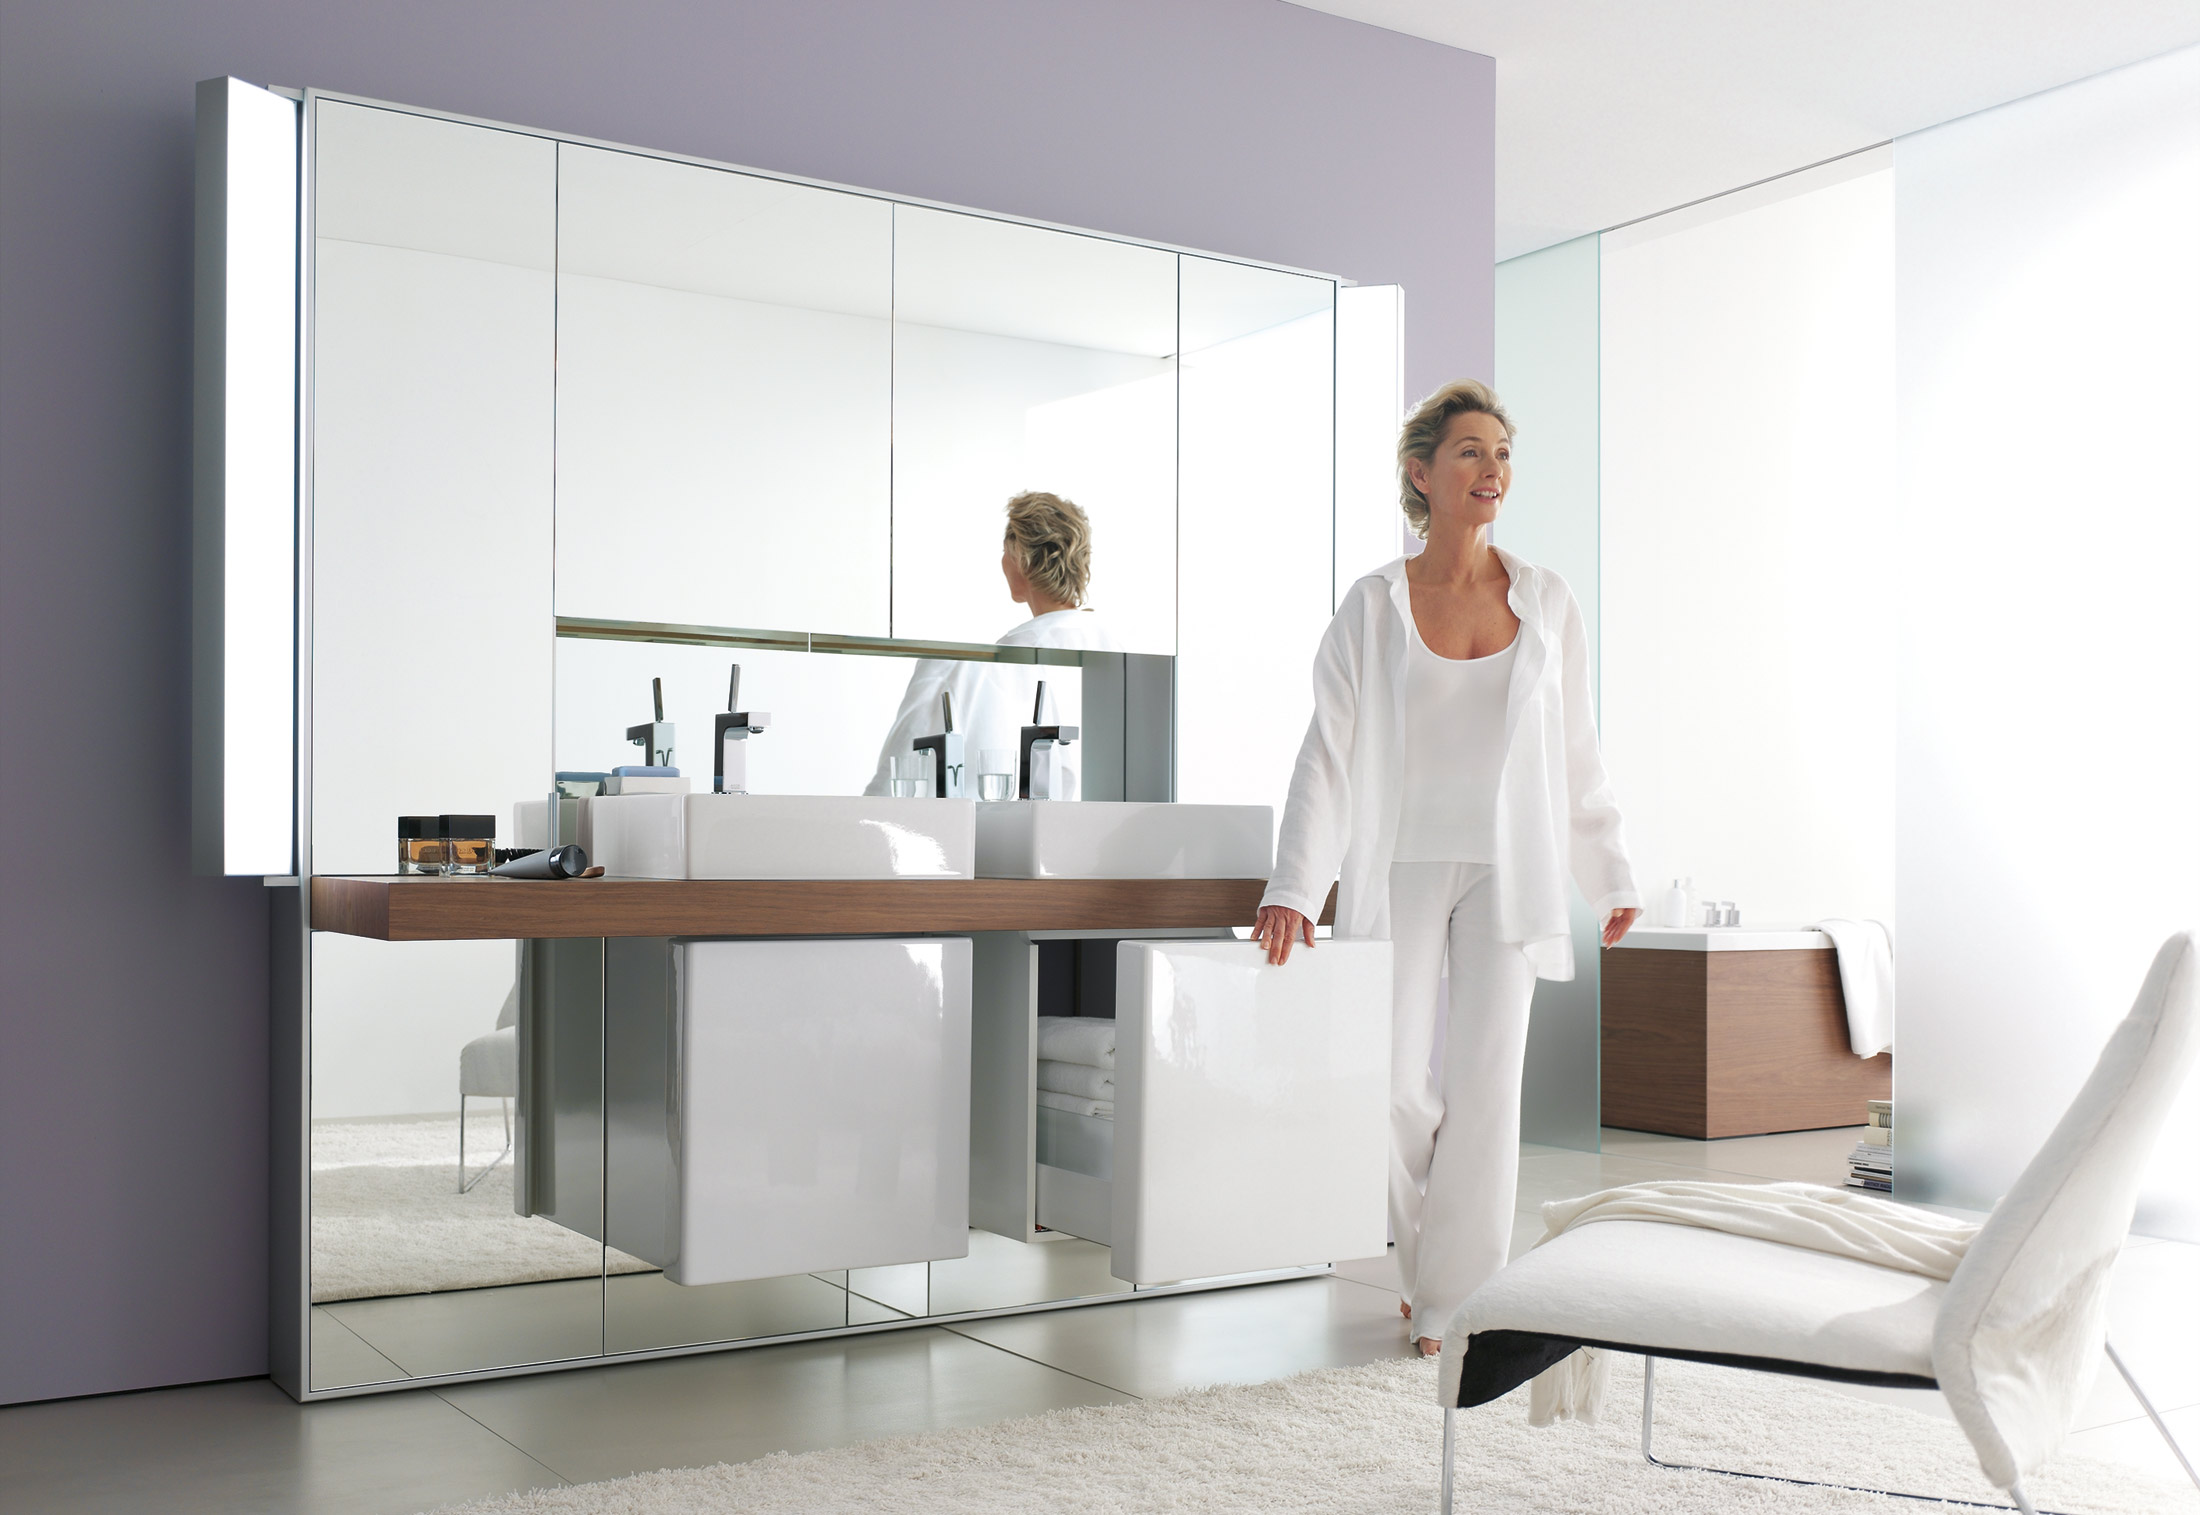 Mirrorwall double by Duravit | STYLEPARK